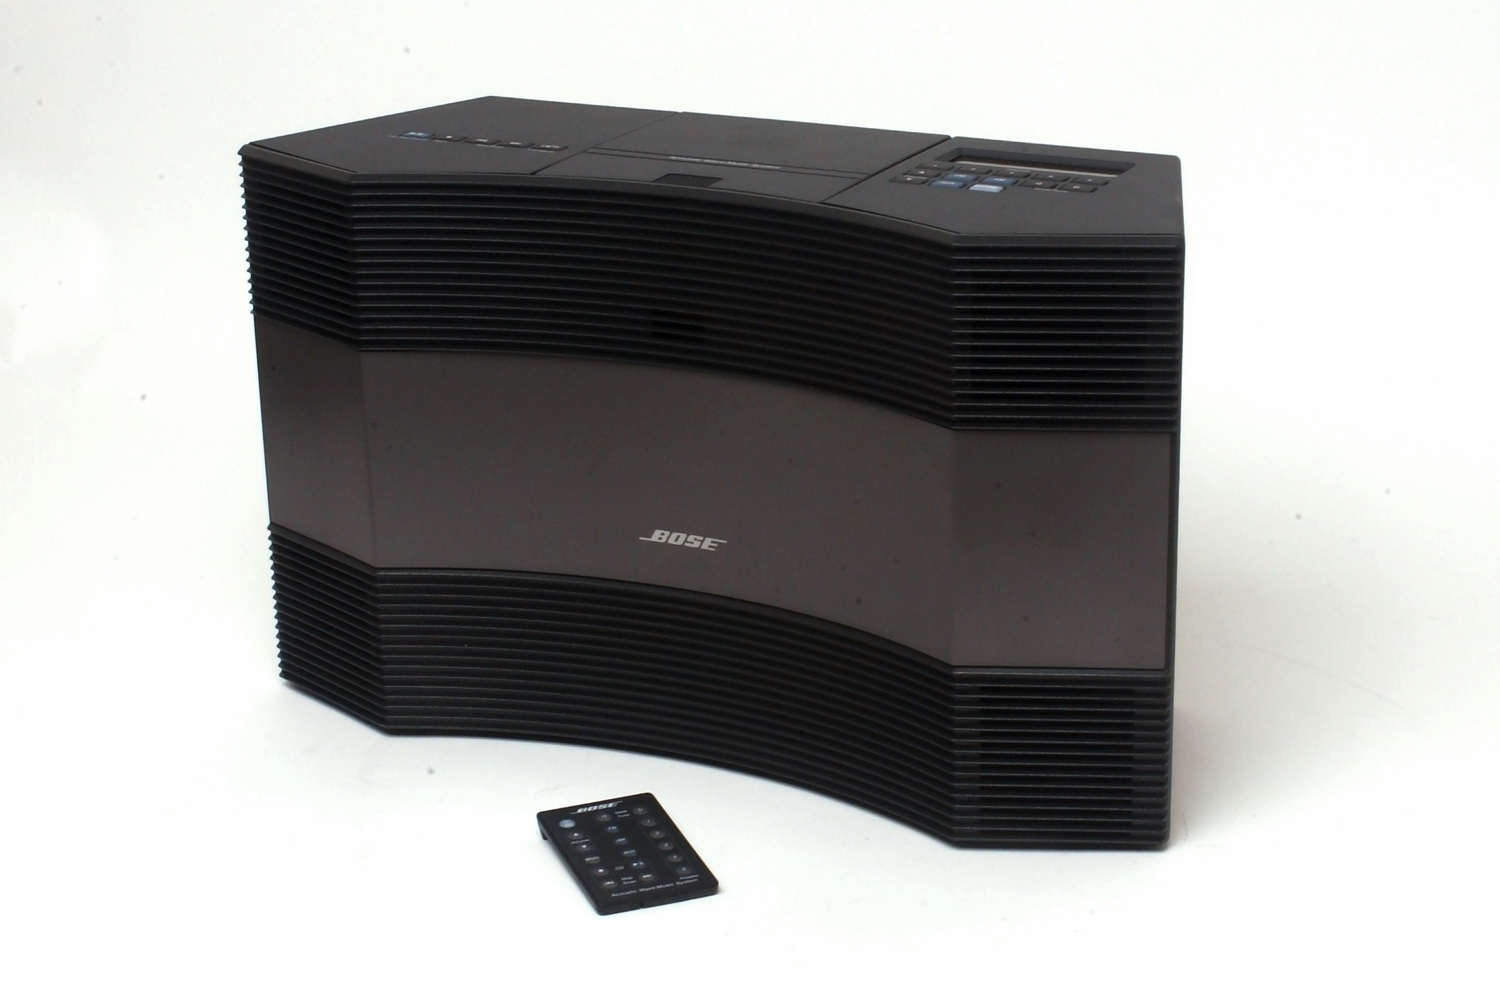 bose acoustic wave music system review home entertainment mini hifi good gear guide australia. Black Bedroom Furniture Sets. Home Design Ideas